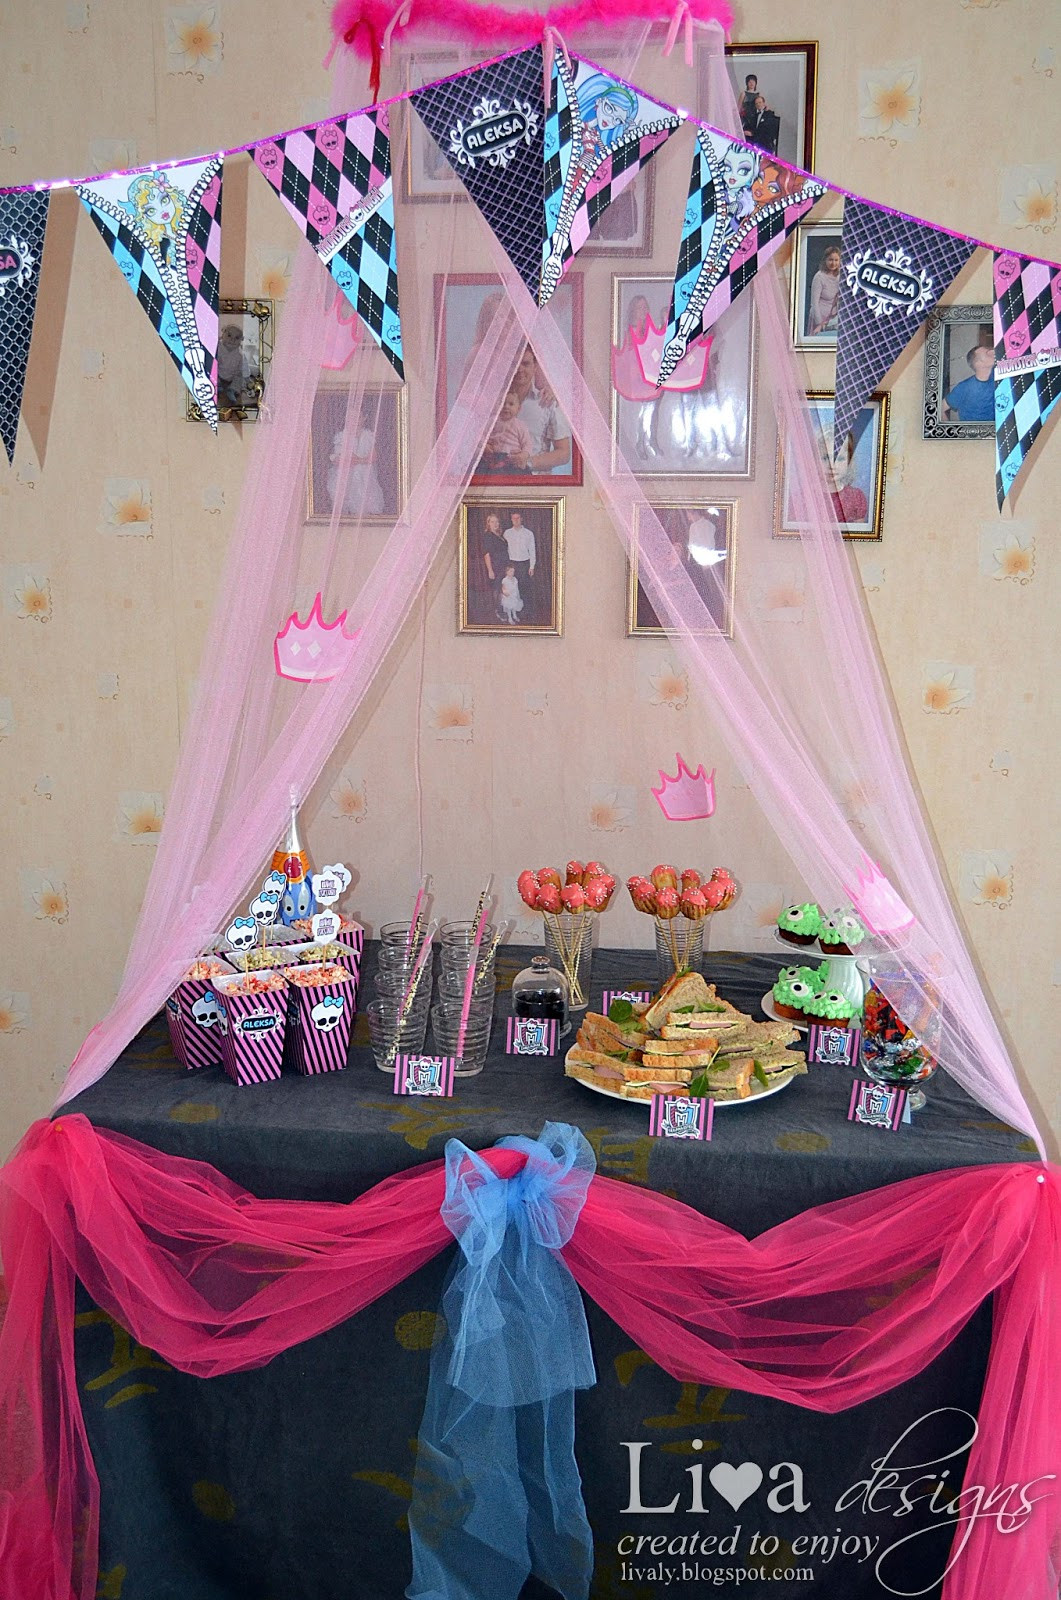 Best ideas about Monster High Birthday Party . Save or Pin Livas crafts Monster High Party Now.